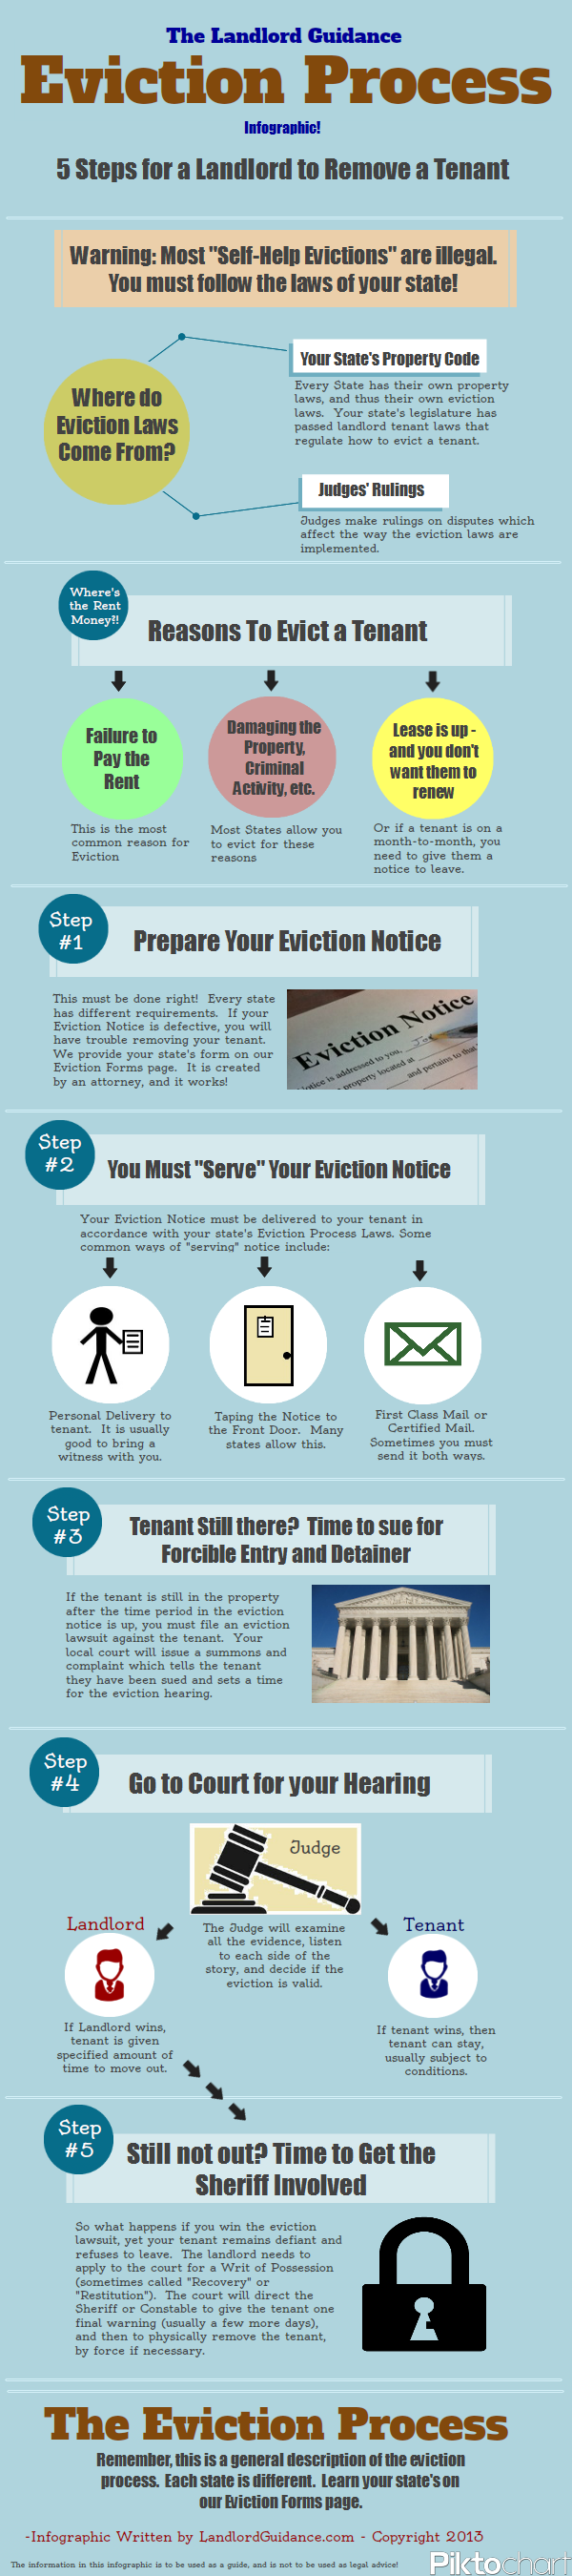 Eviction Process Infographic